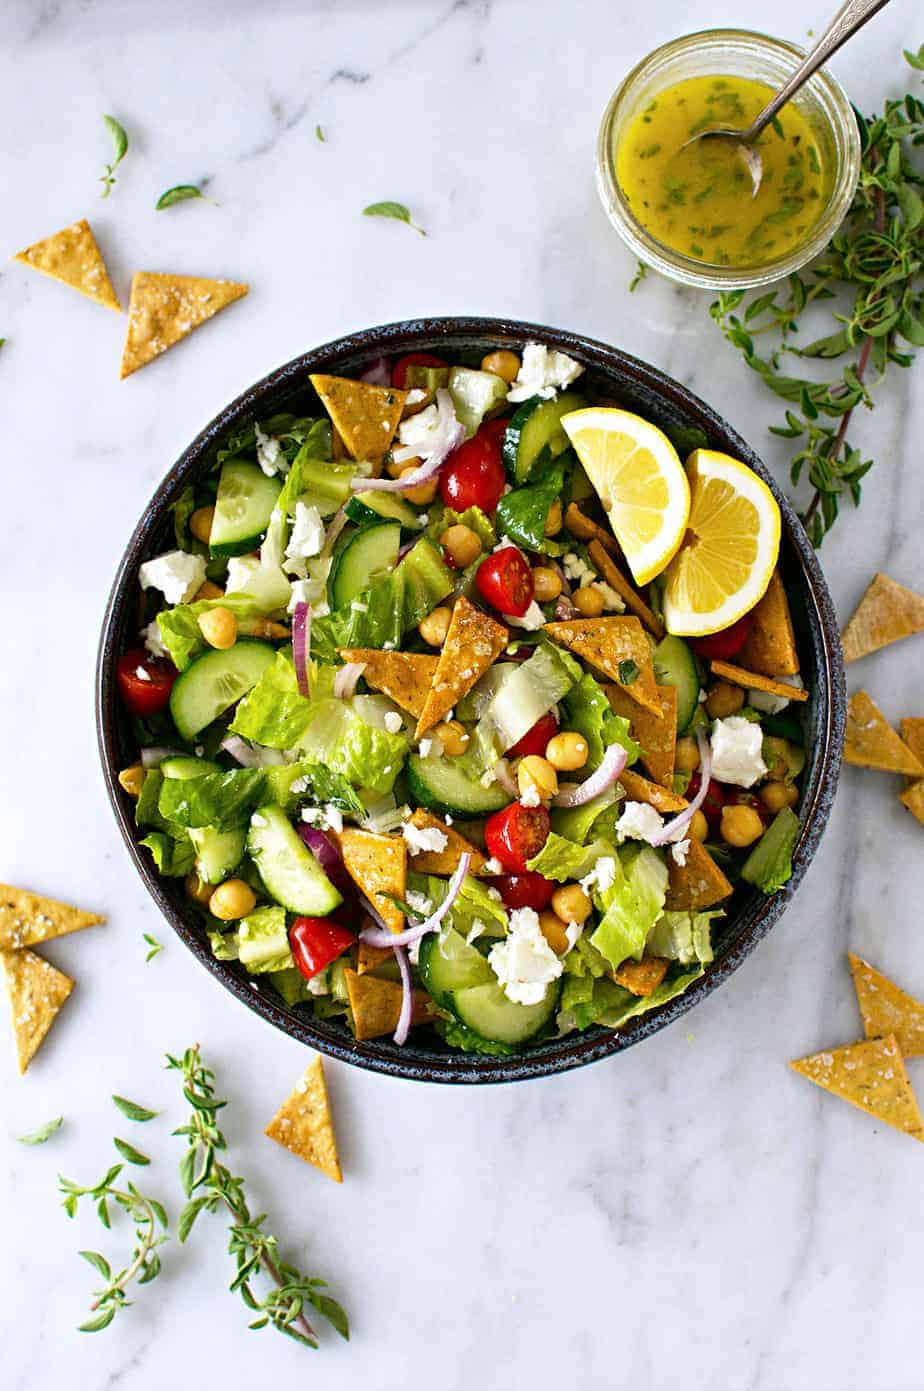 Gluten-Free Fattoush Salad with Za'atar Chickpea Crisps recipe (via thepigandquill.com) #vegetarian #greeksalad #mealplanning